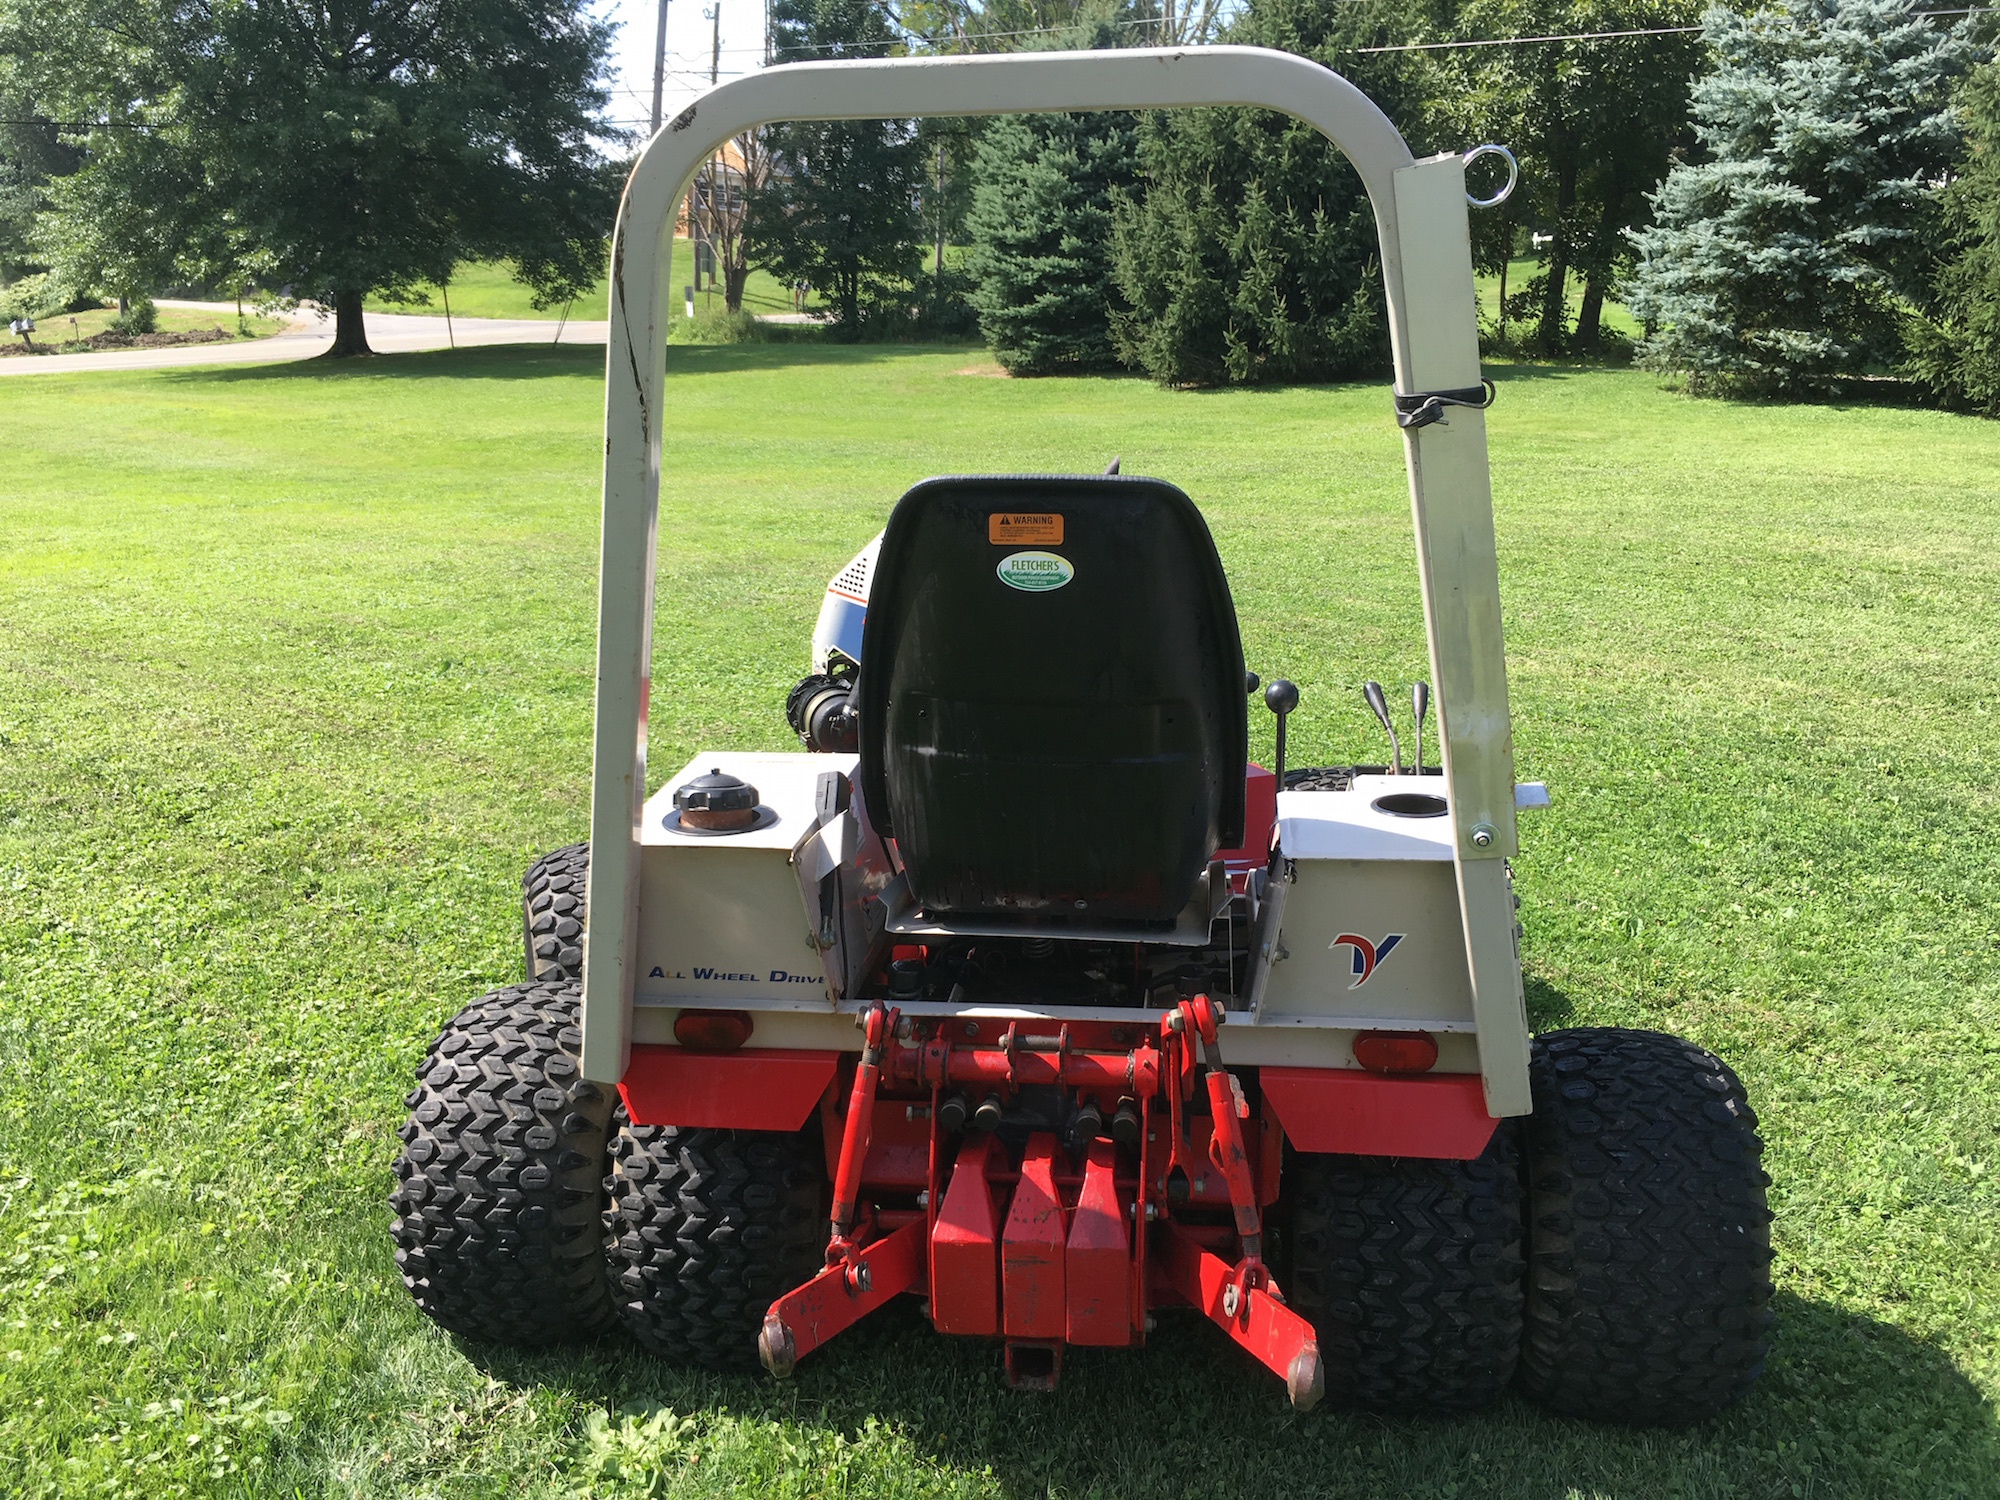 Ventrac 4200VXD AWD Tractor with Finish Mower, Rotary Cutter